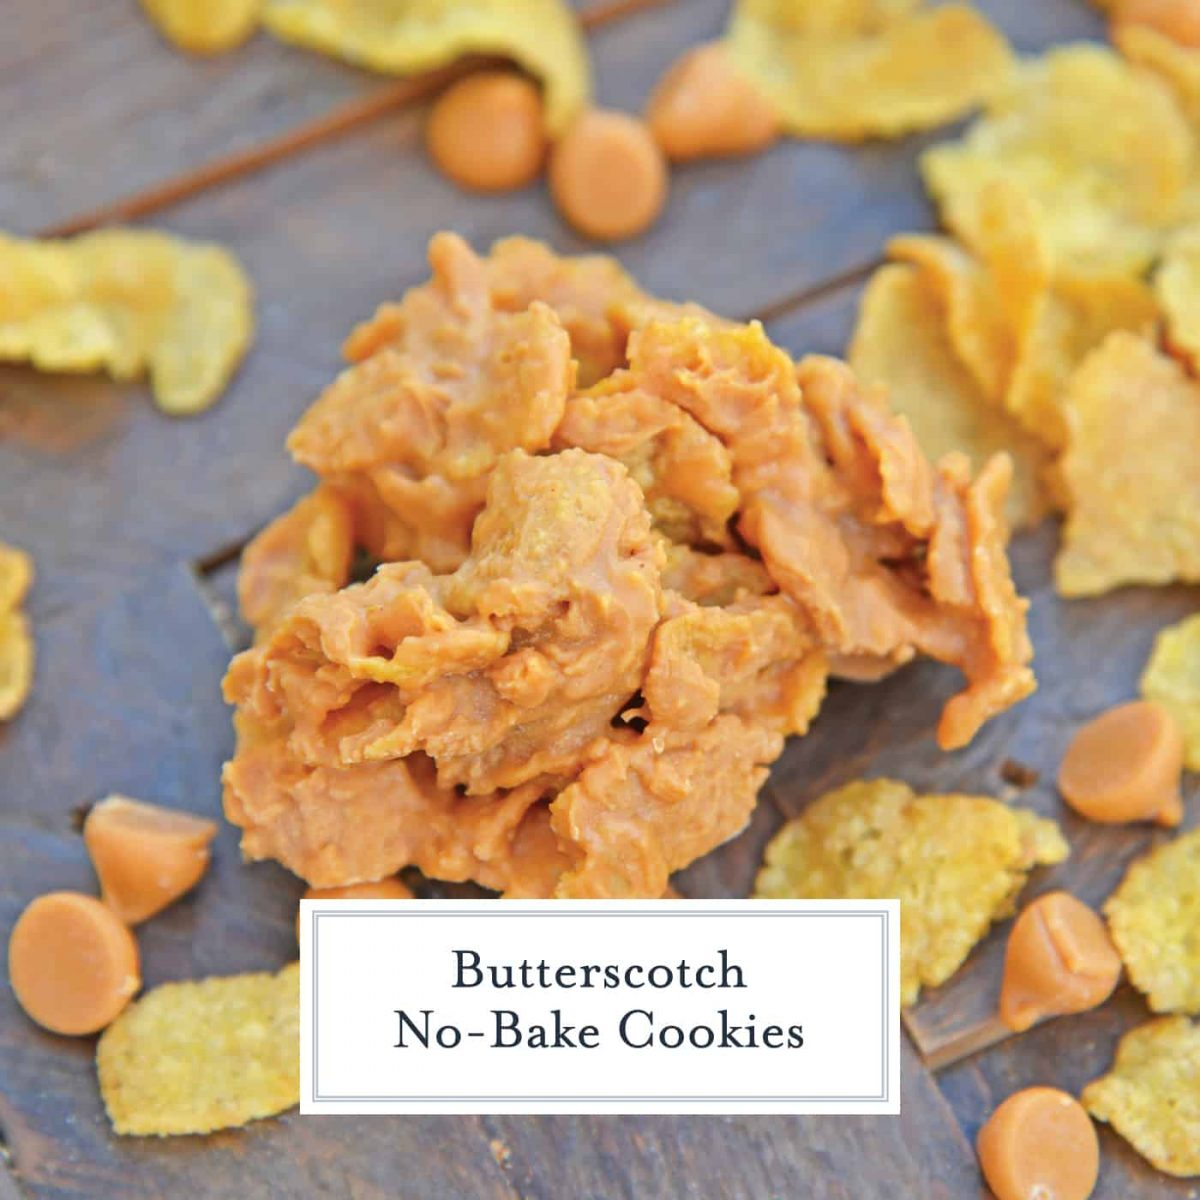 Butterscotch No-Bake Cookies are a simple 3 ingredient no bake cookie recipe. A quick and easy butterscotch cookie recipe everyone loves! #butterscotchcookies #nobakecookies www.savoryexperiments.com